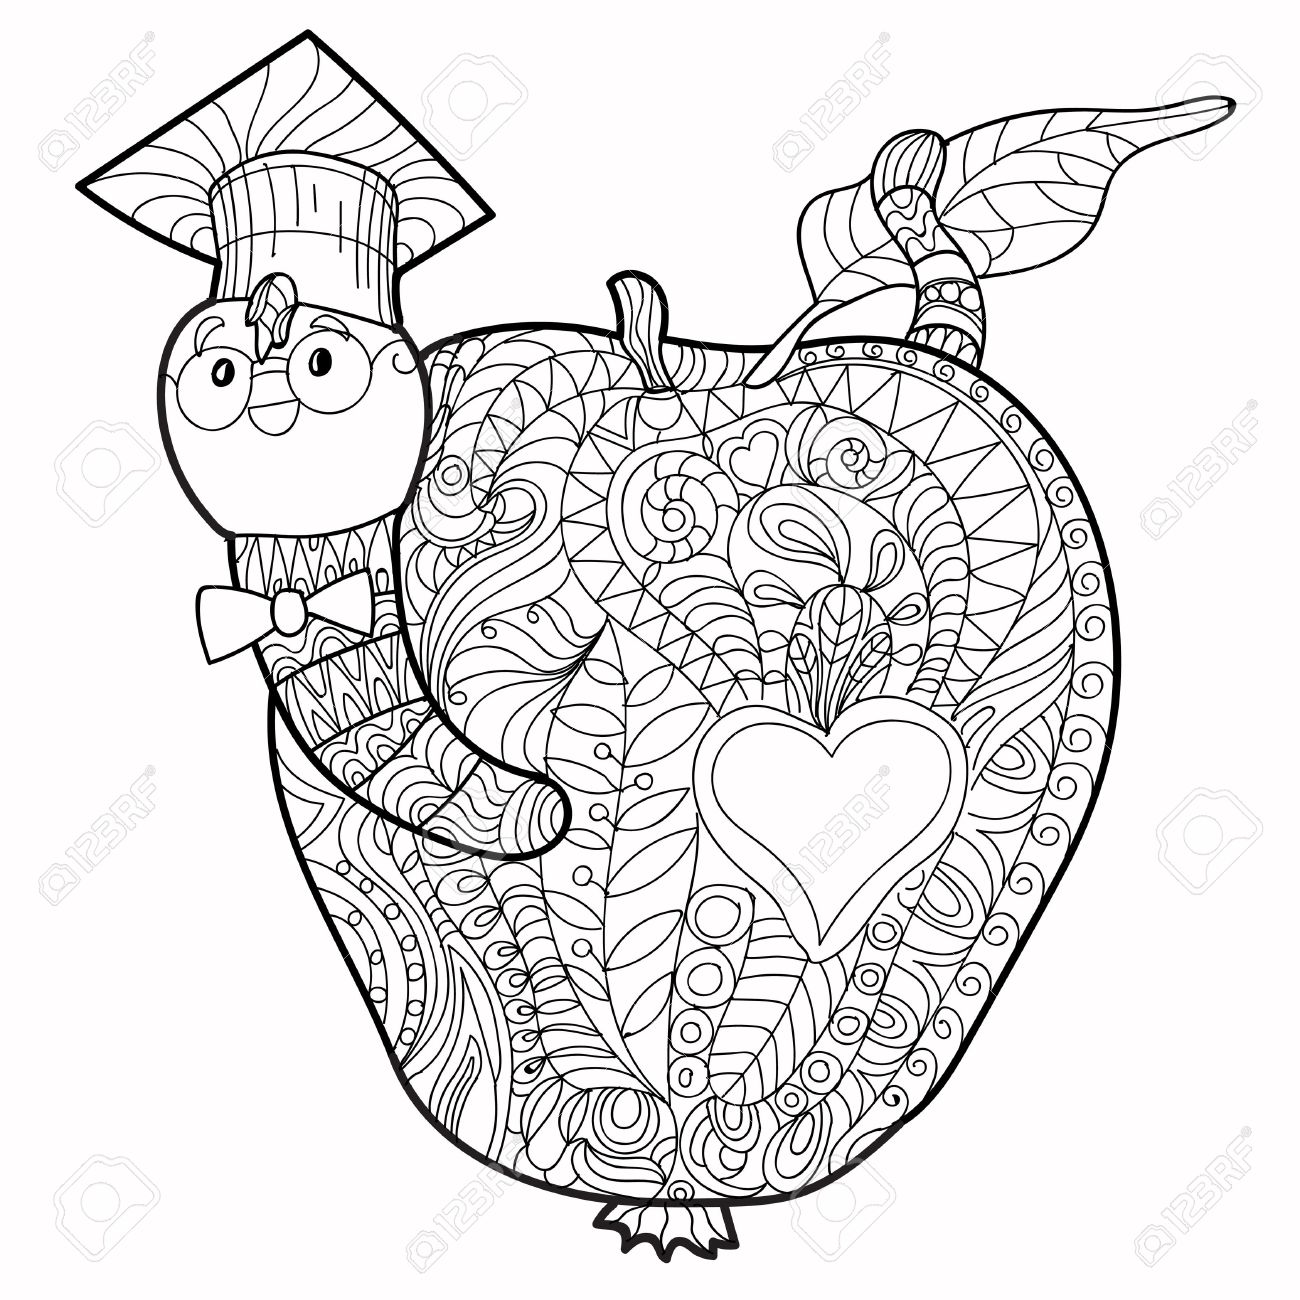 1300x1300 Bookworm Doodle In The Graduates Hat In Apple. Royalty Free